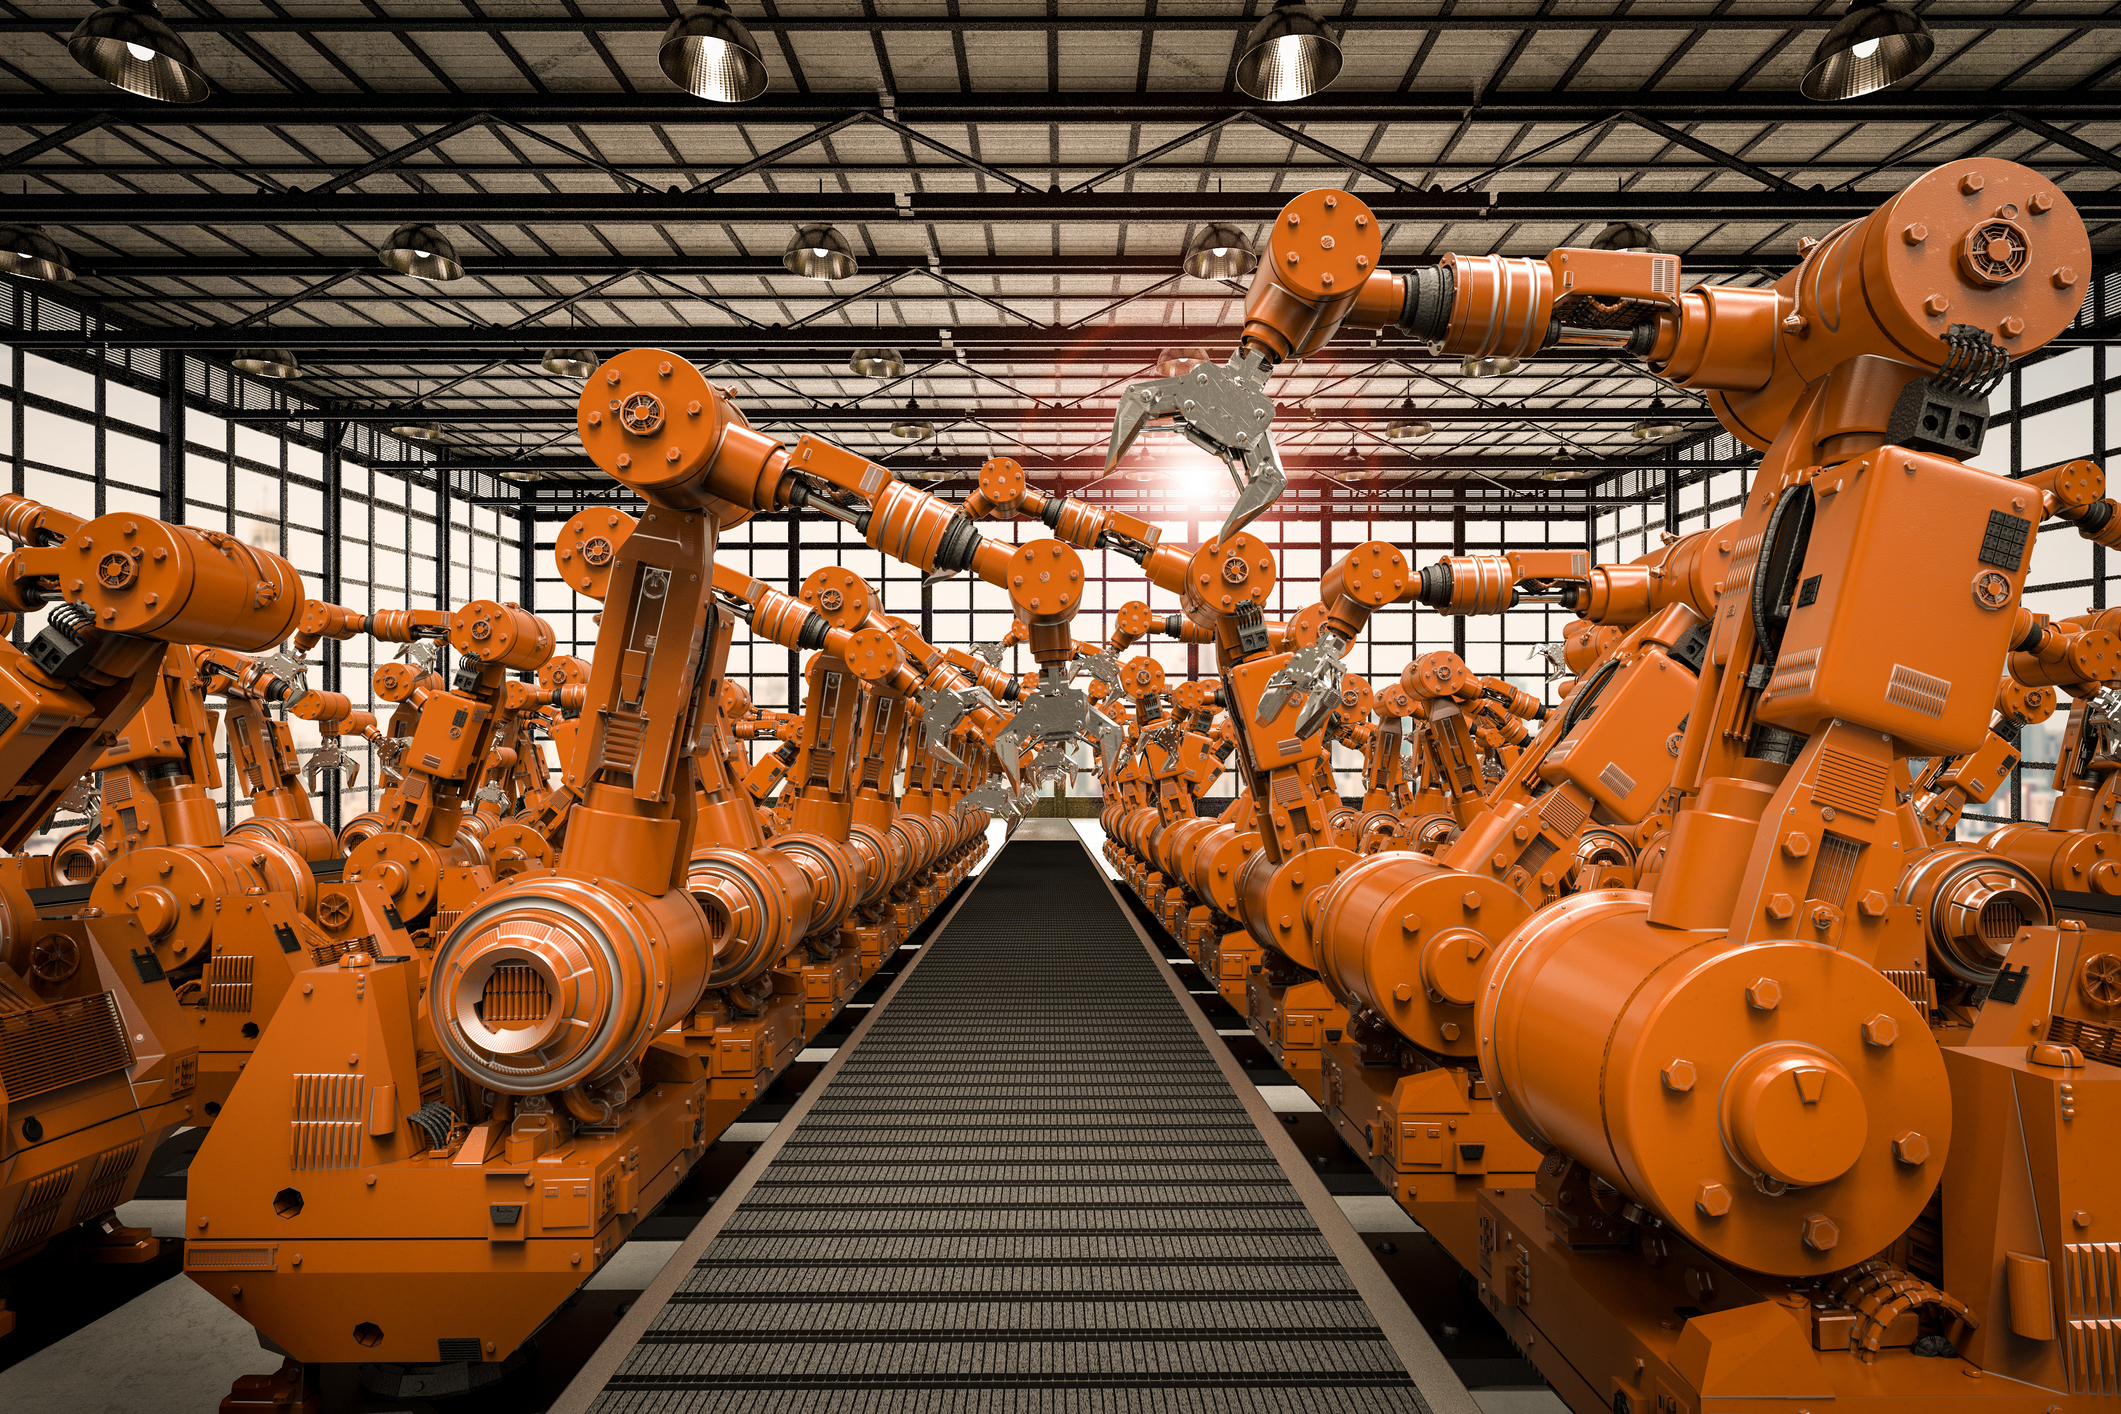 Robotic Application of Anti-Microbial Copper Coatings